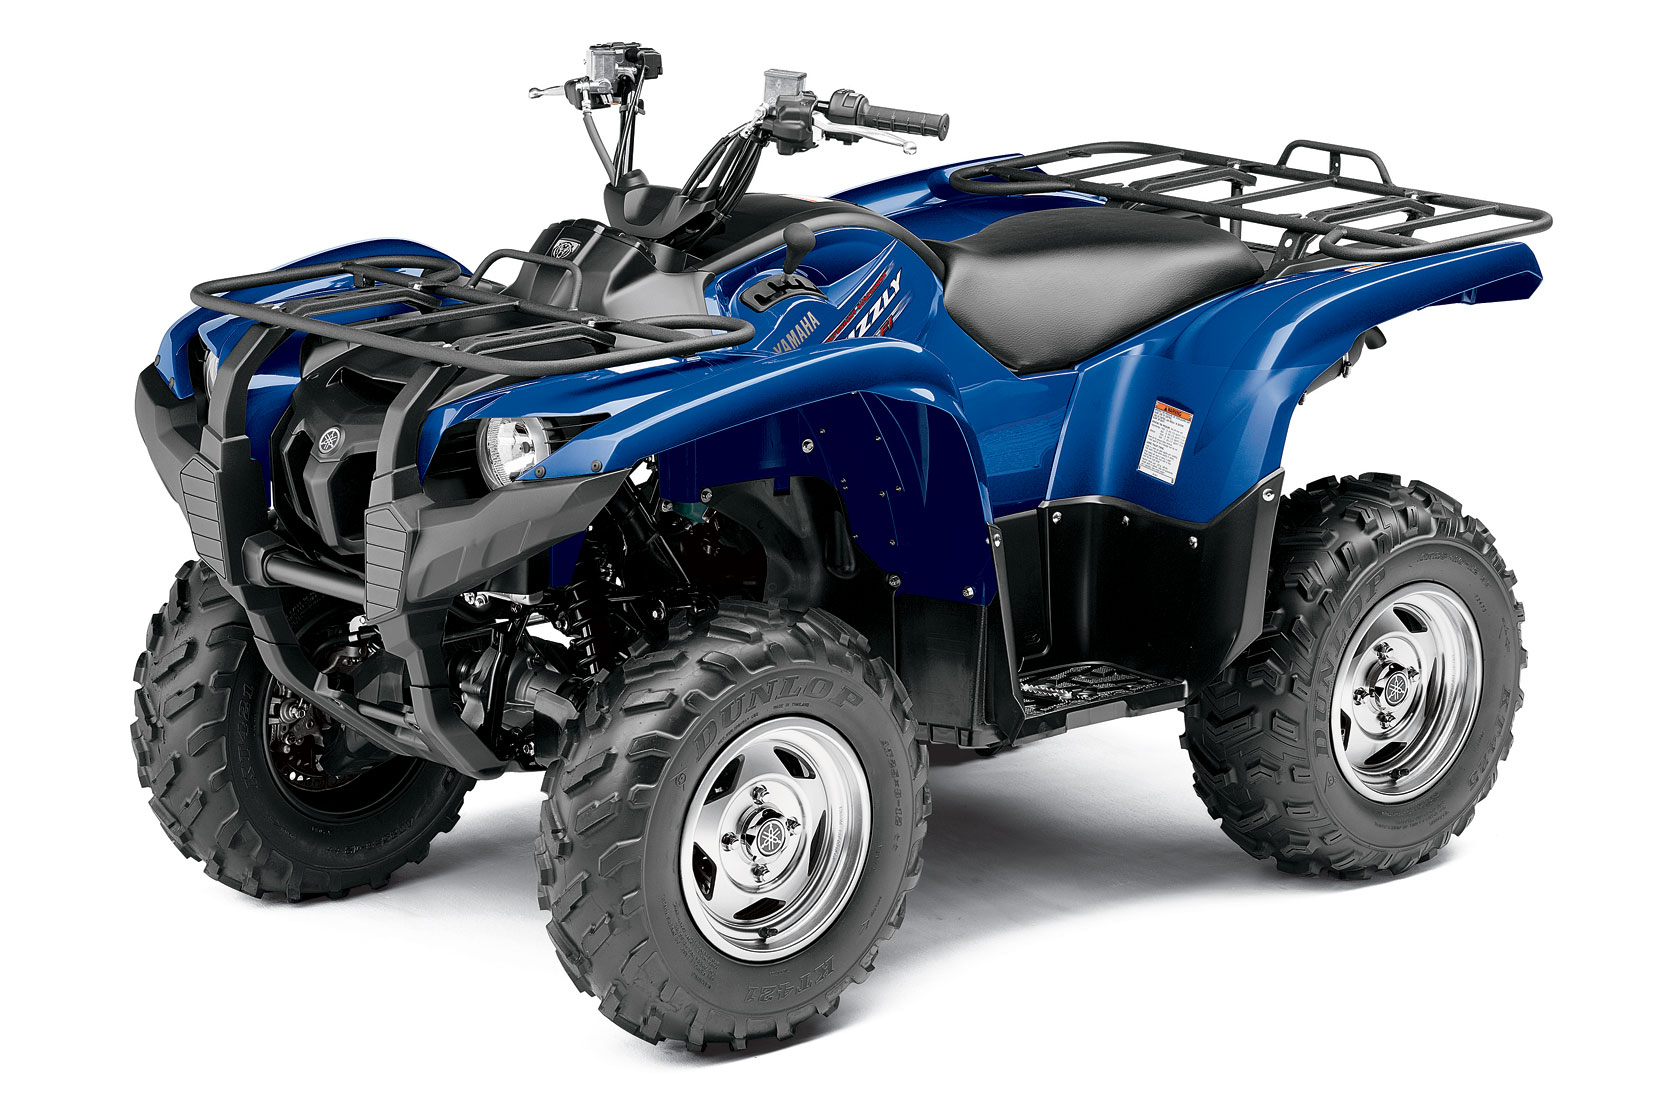 2014 yamaha 550 grizzly problems autos post for 2014 yamaha atv